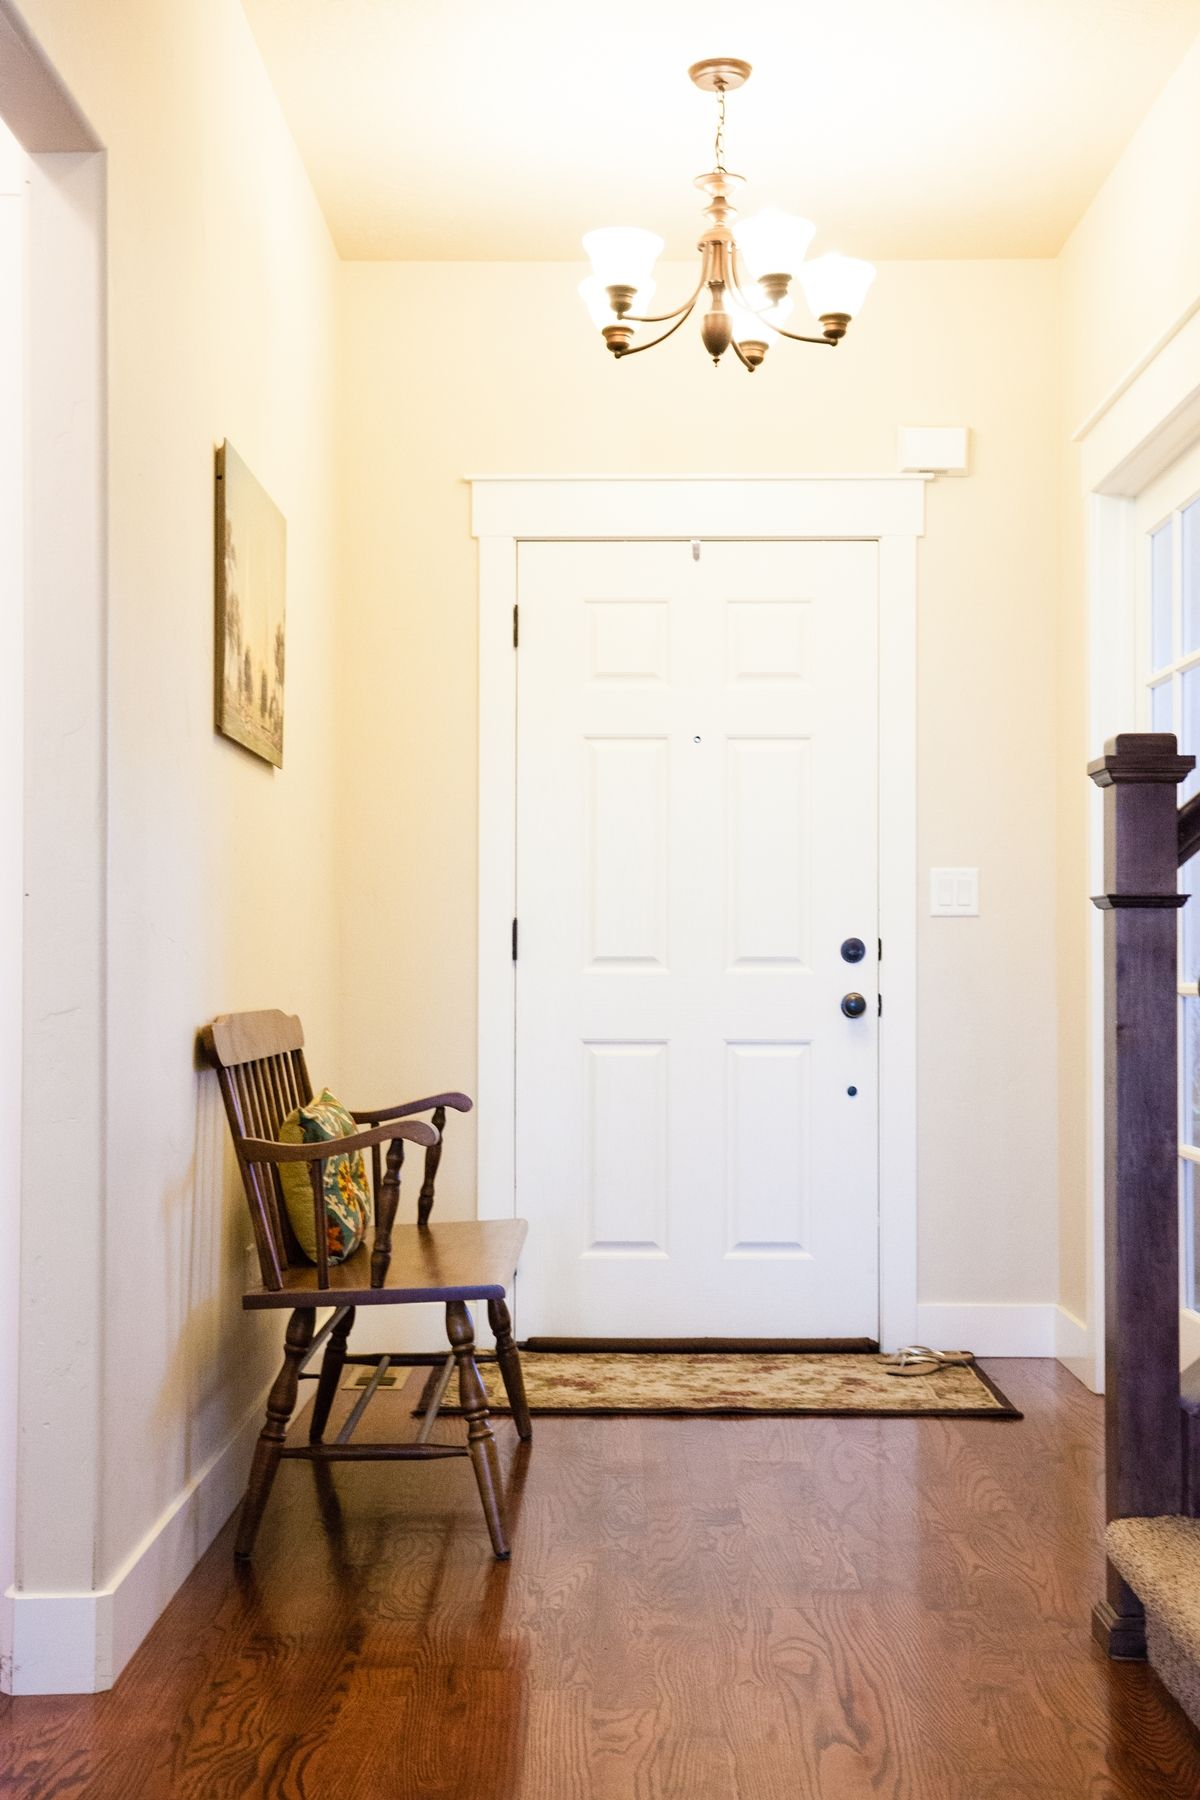 How to Decorate an Entryway for Great First Impressions